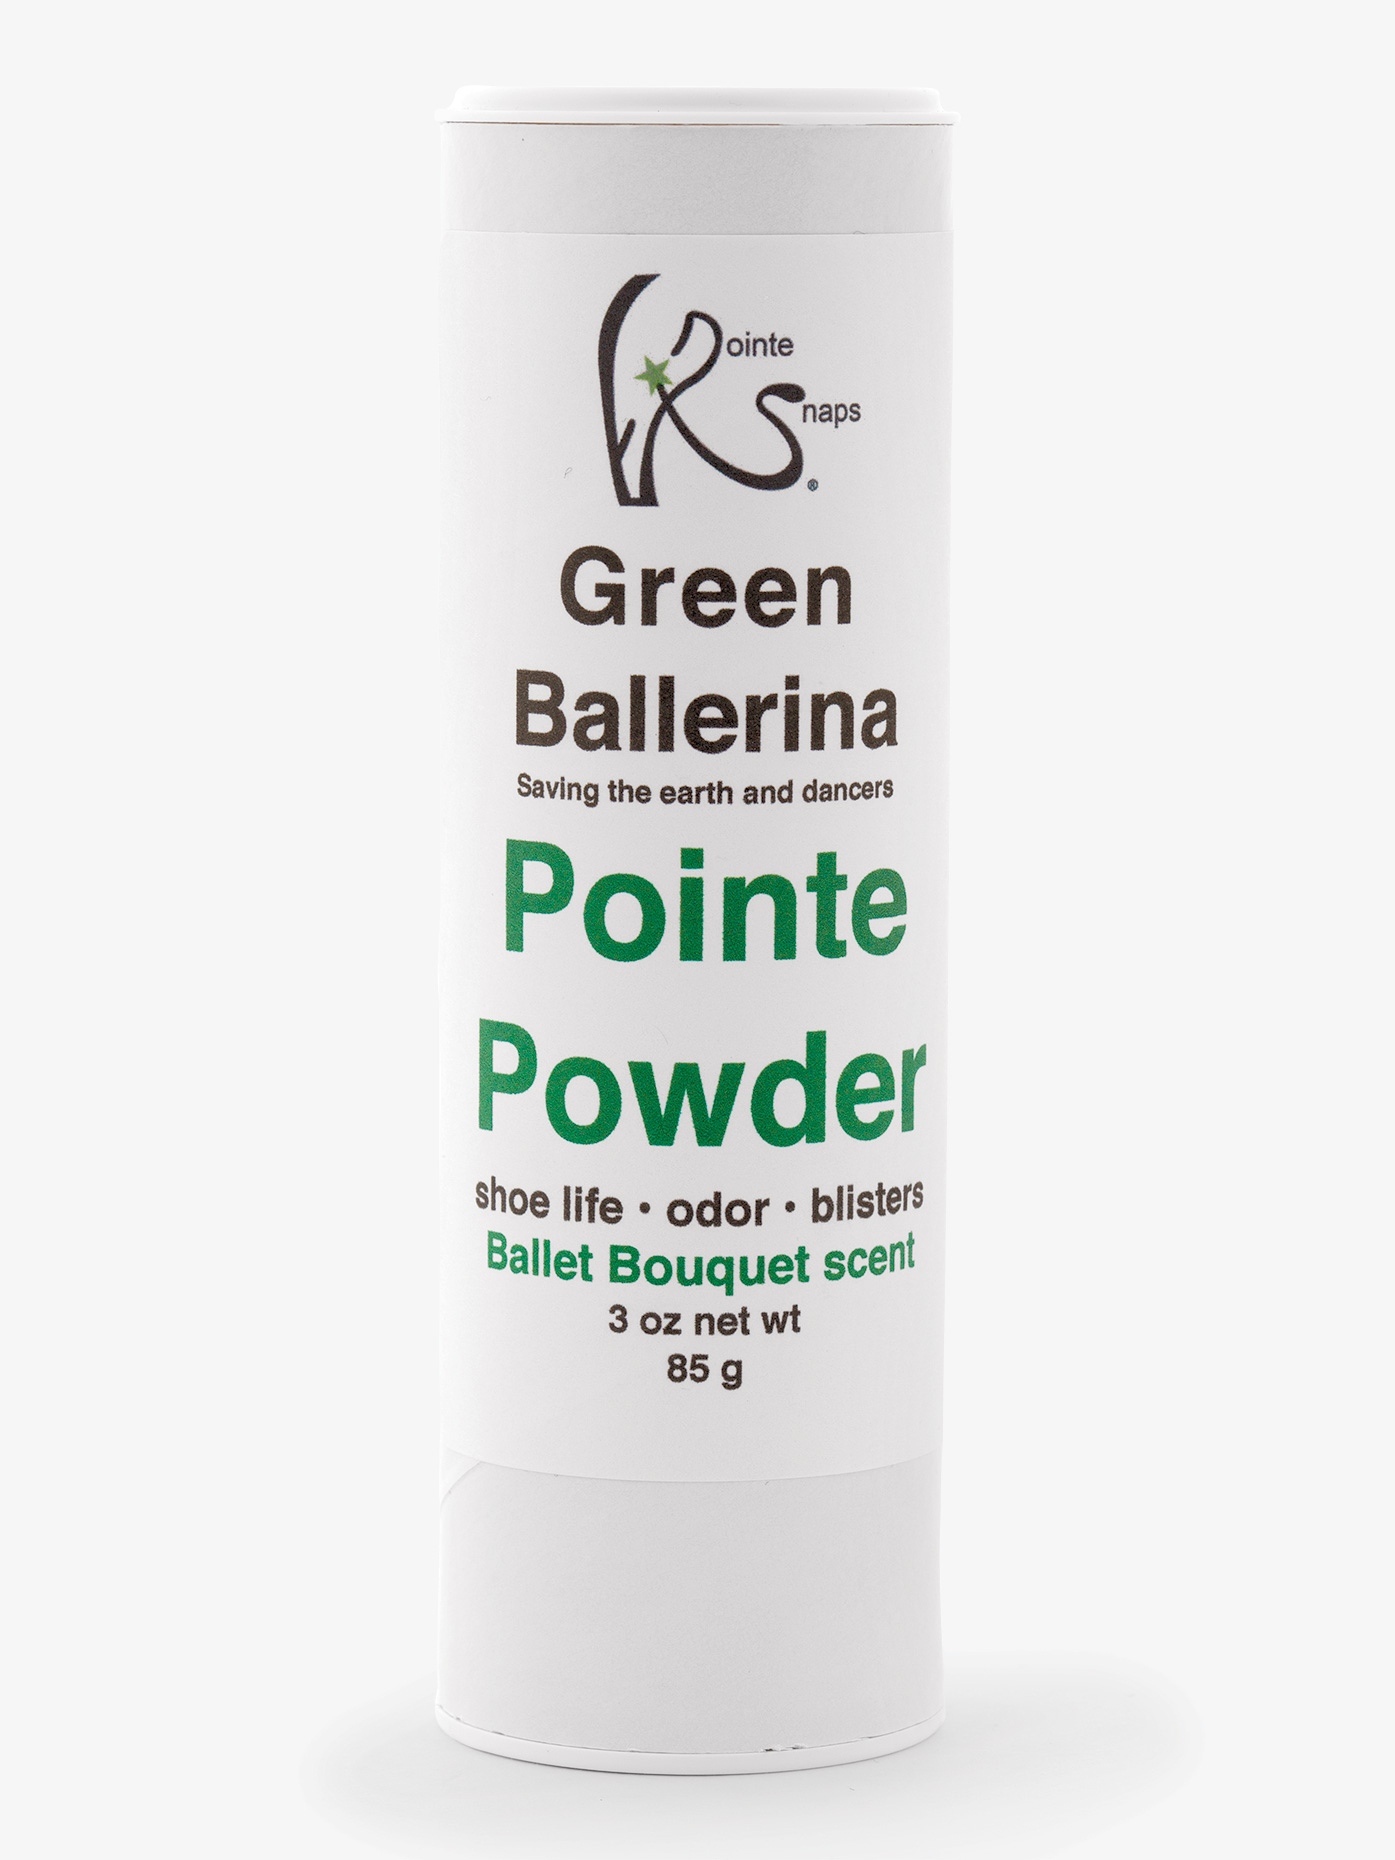 Pointe Snaps Pointe Shoe Powder WGBPP